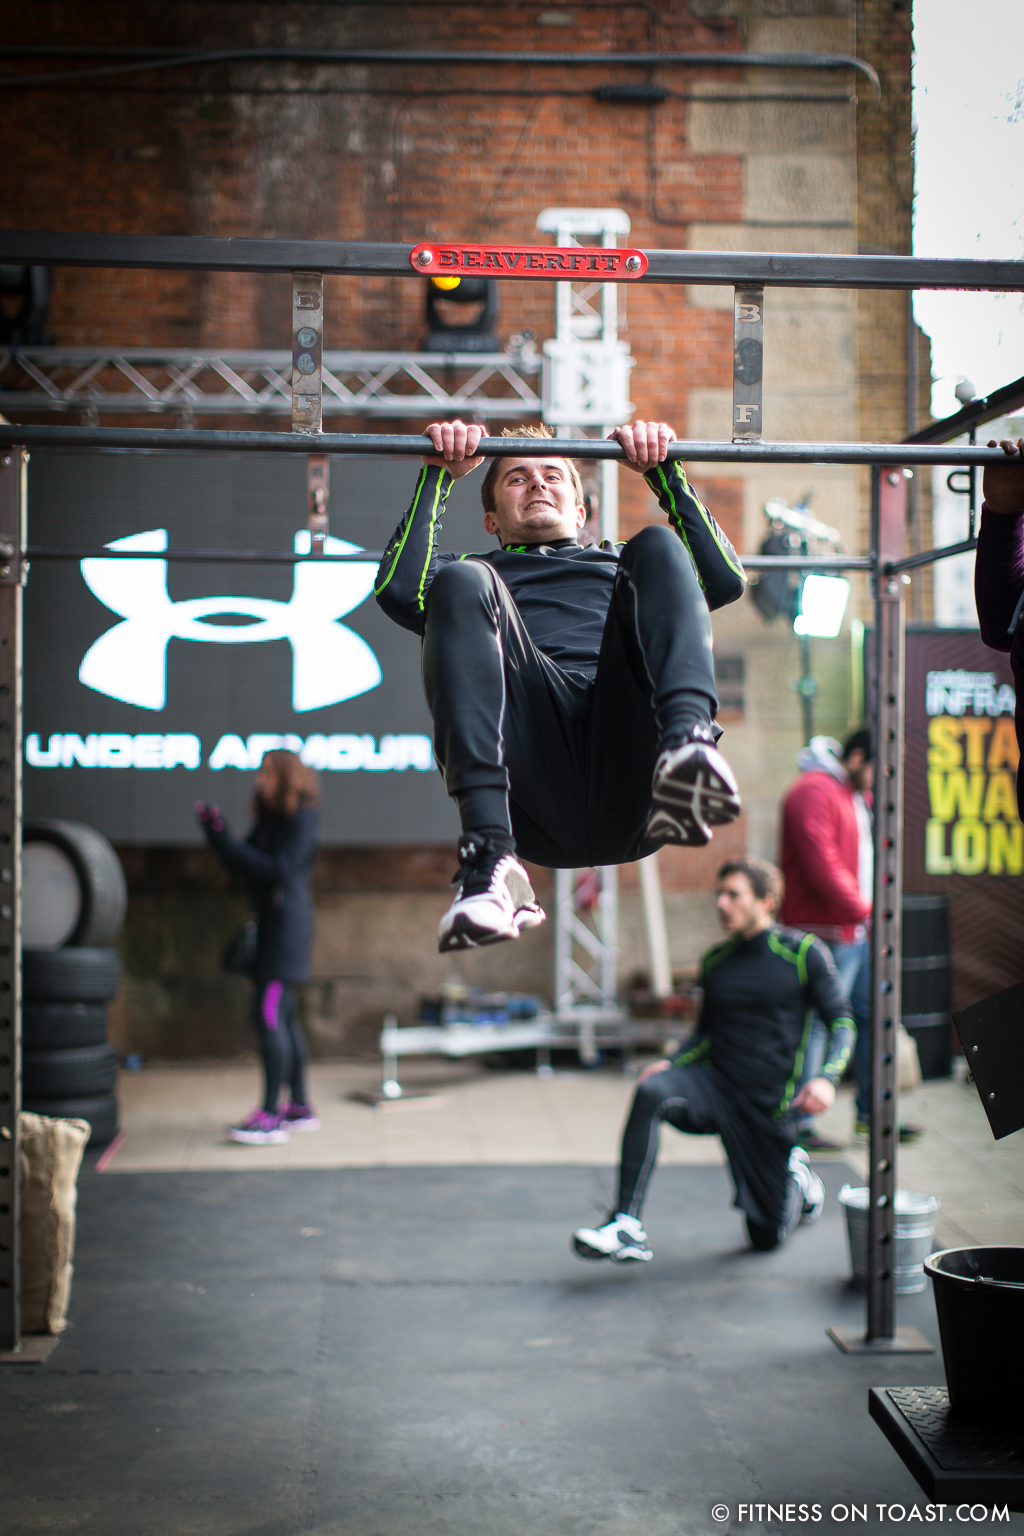 Fitness On Toast Faya Under Armour Armor Gym Southwark Bridge London Pop Up Exercise Temporary Stations Sledge Functional Compound-14